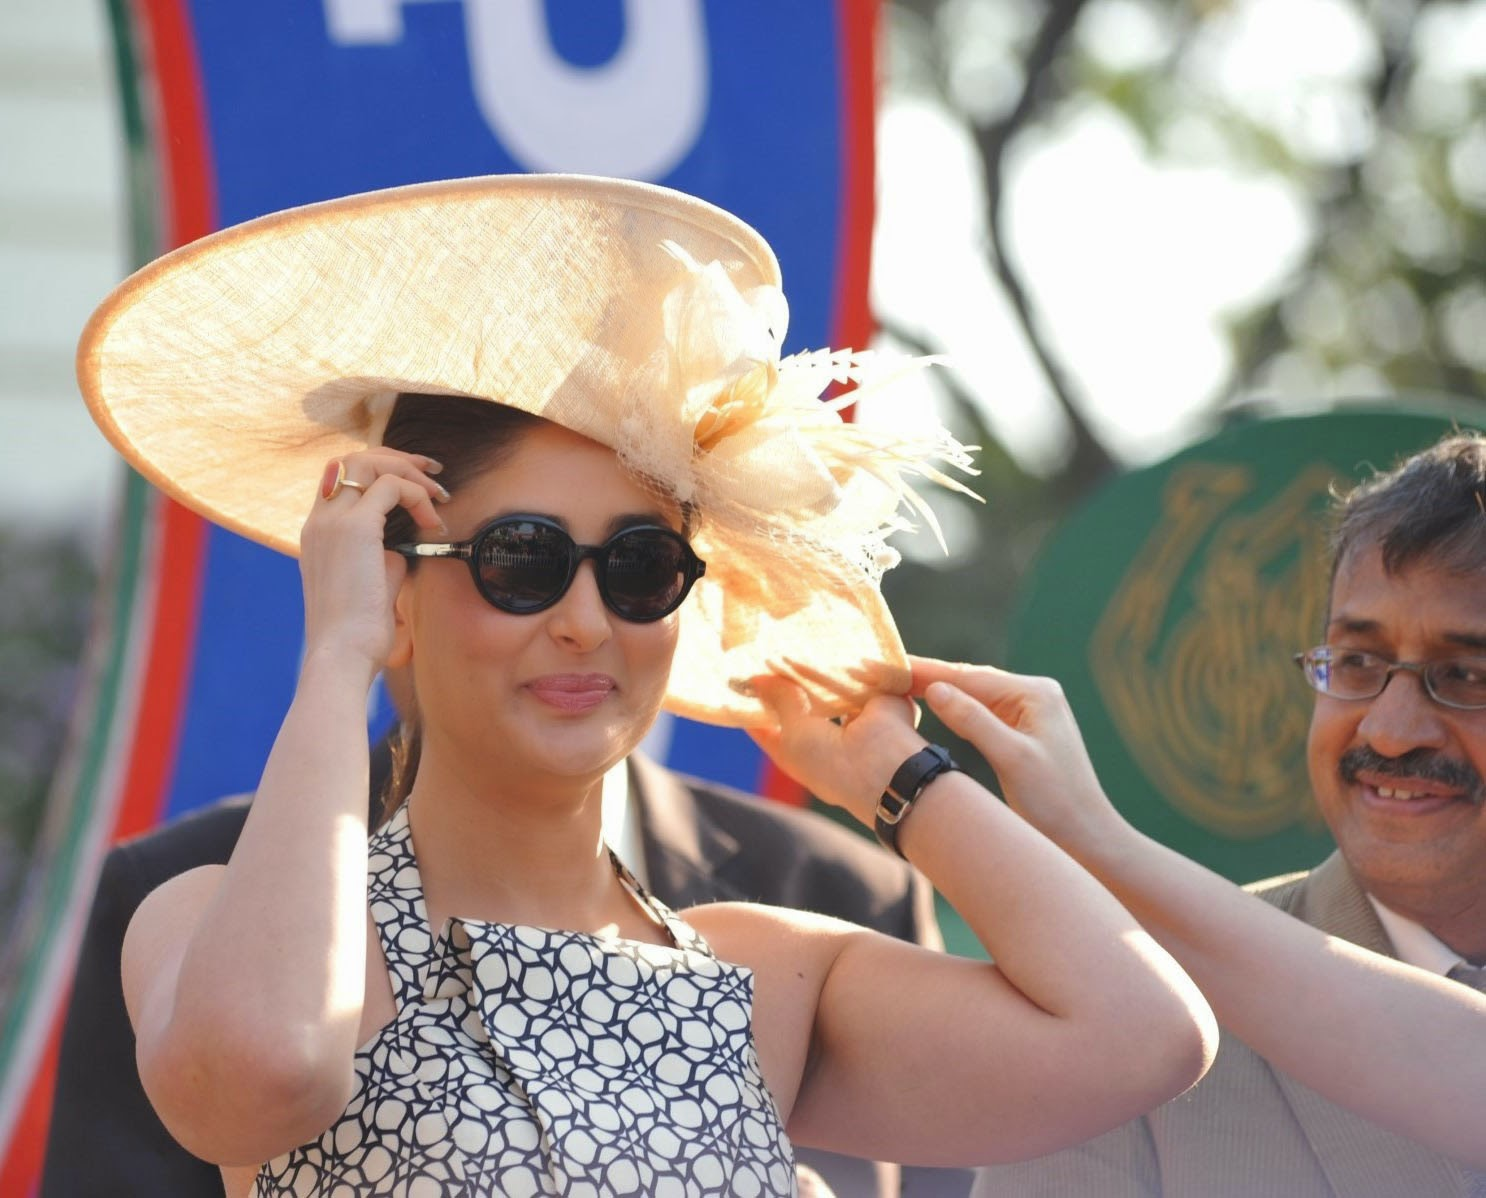 http://4.bp.blogspot.com/-kdDcTF3fUeo/Ut0-zxCXiTI/AAAAAAABogY/zT8j43W0580/s1600/Kareena+Kapoor+and+Tushar+attends+the+Mid-Day+races+.JPG